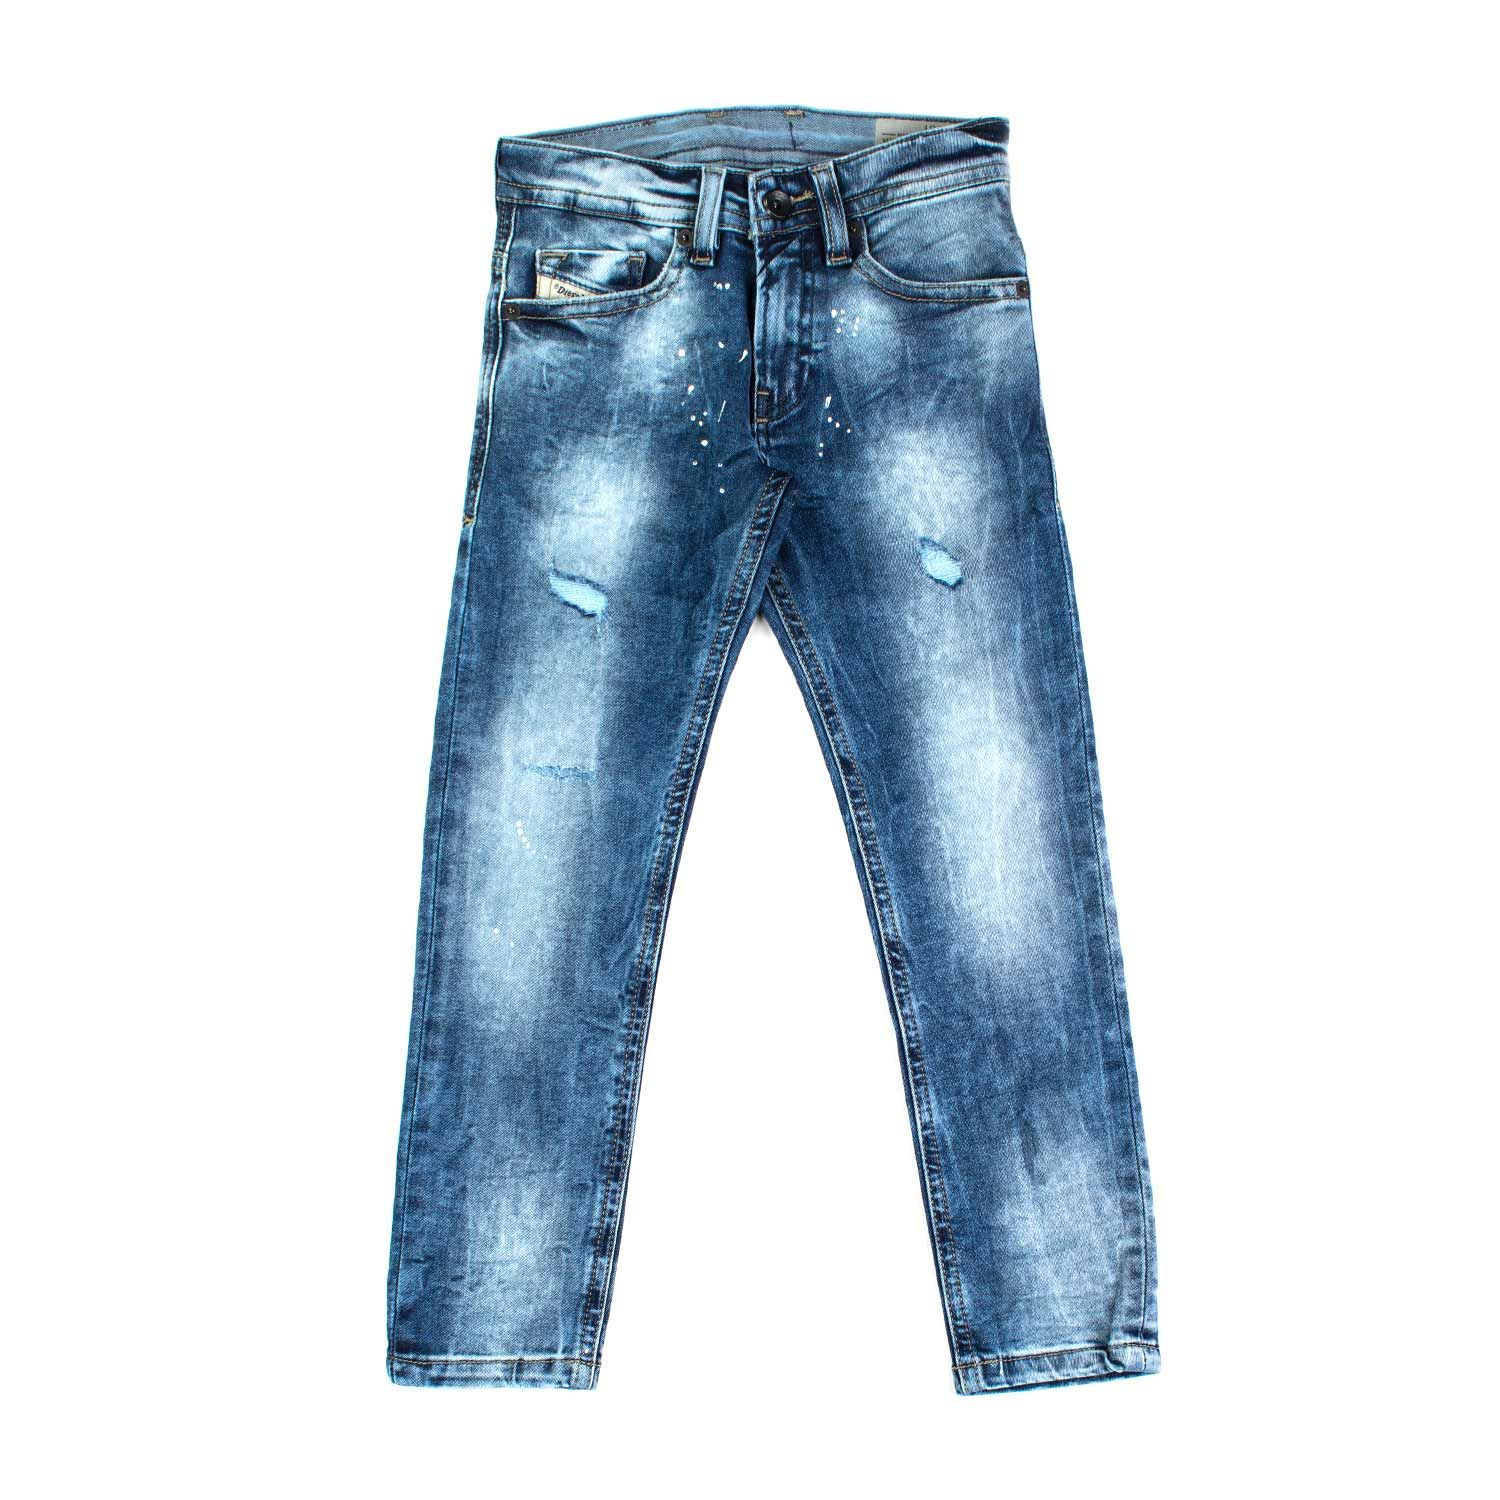 newest collection 5b7d9 f31f9 Diesel - Jeans Stone Washed Bambino Teen - Jeans chiaro con ...